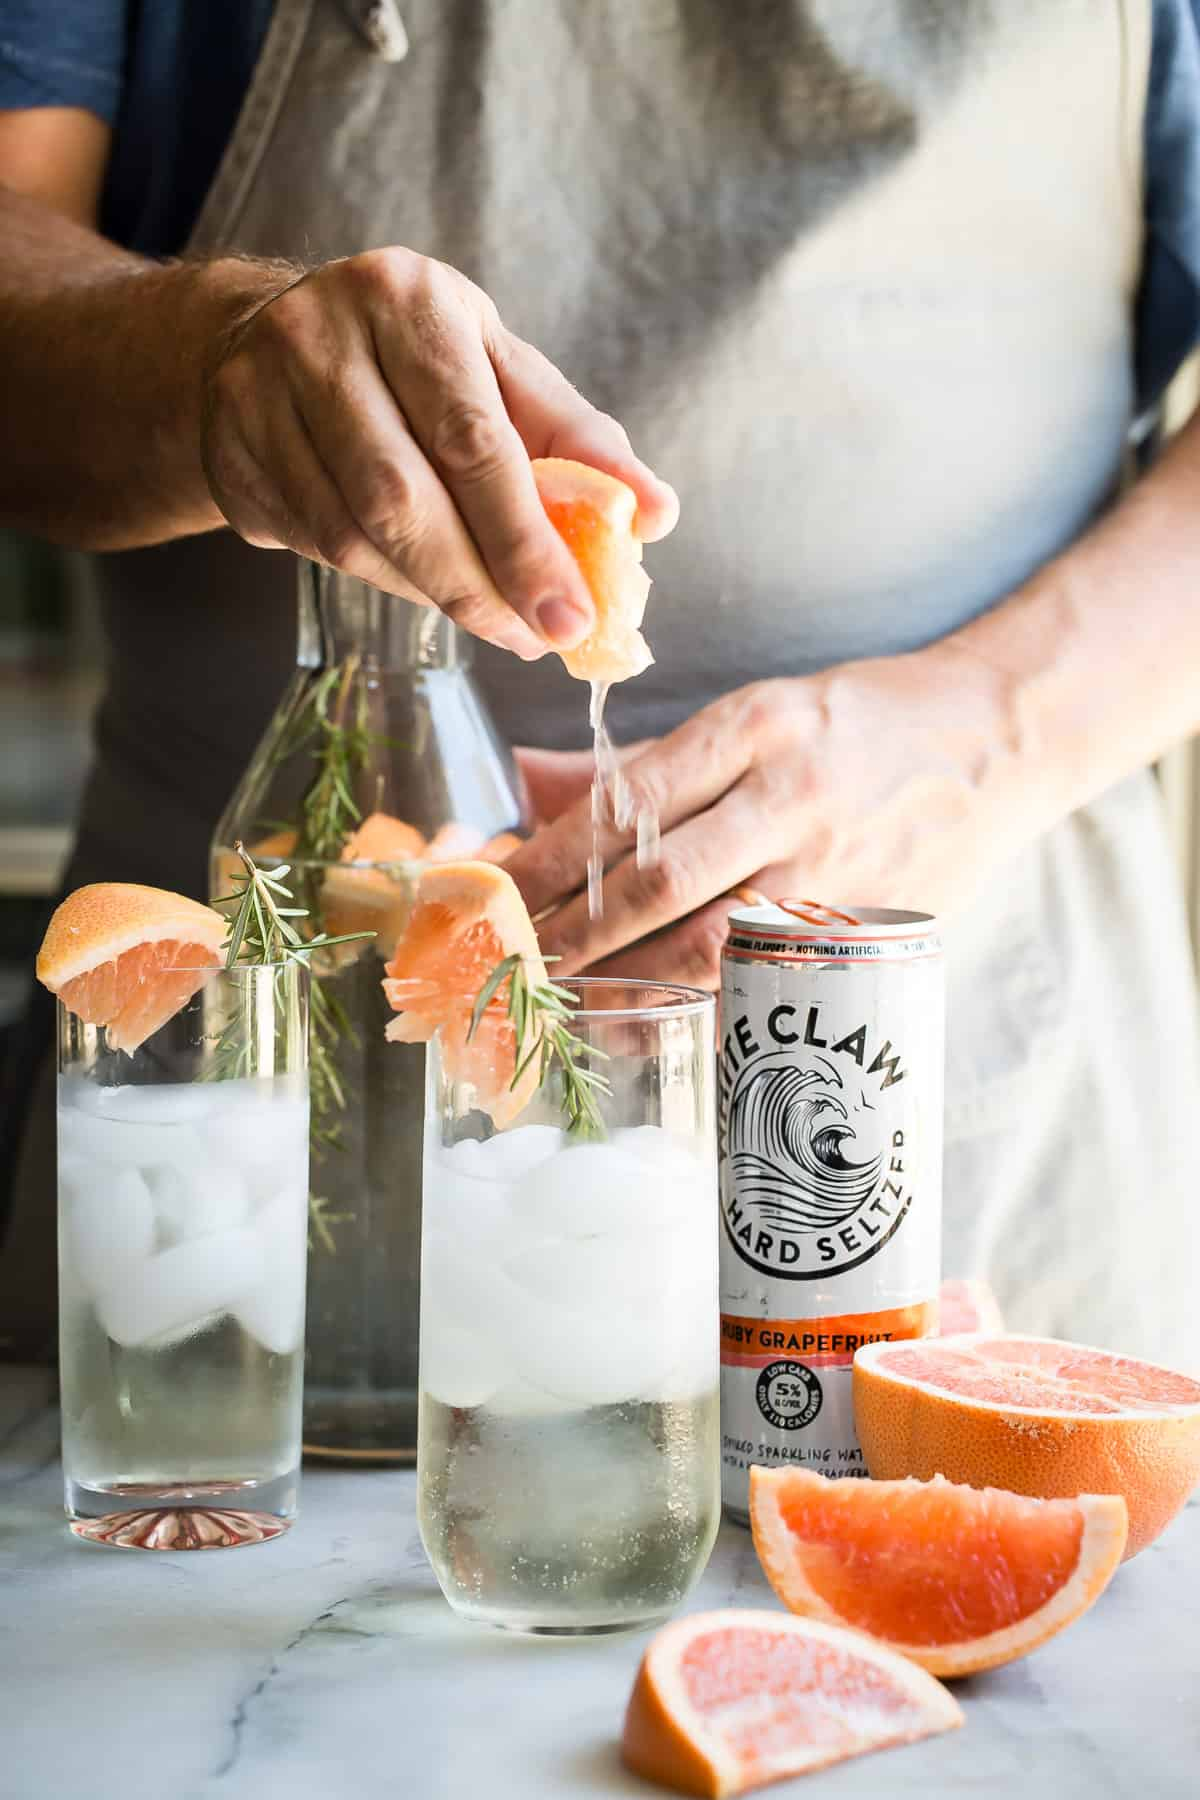 "Summer should be all about refreshing sparkling seltzer drinks like this White Claw Ruby Grapefruit Hard Seltzer, Prosecco and fresh rosemary. If I had to choose a ""hammock drink""...this would be it!"